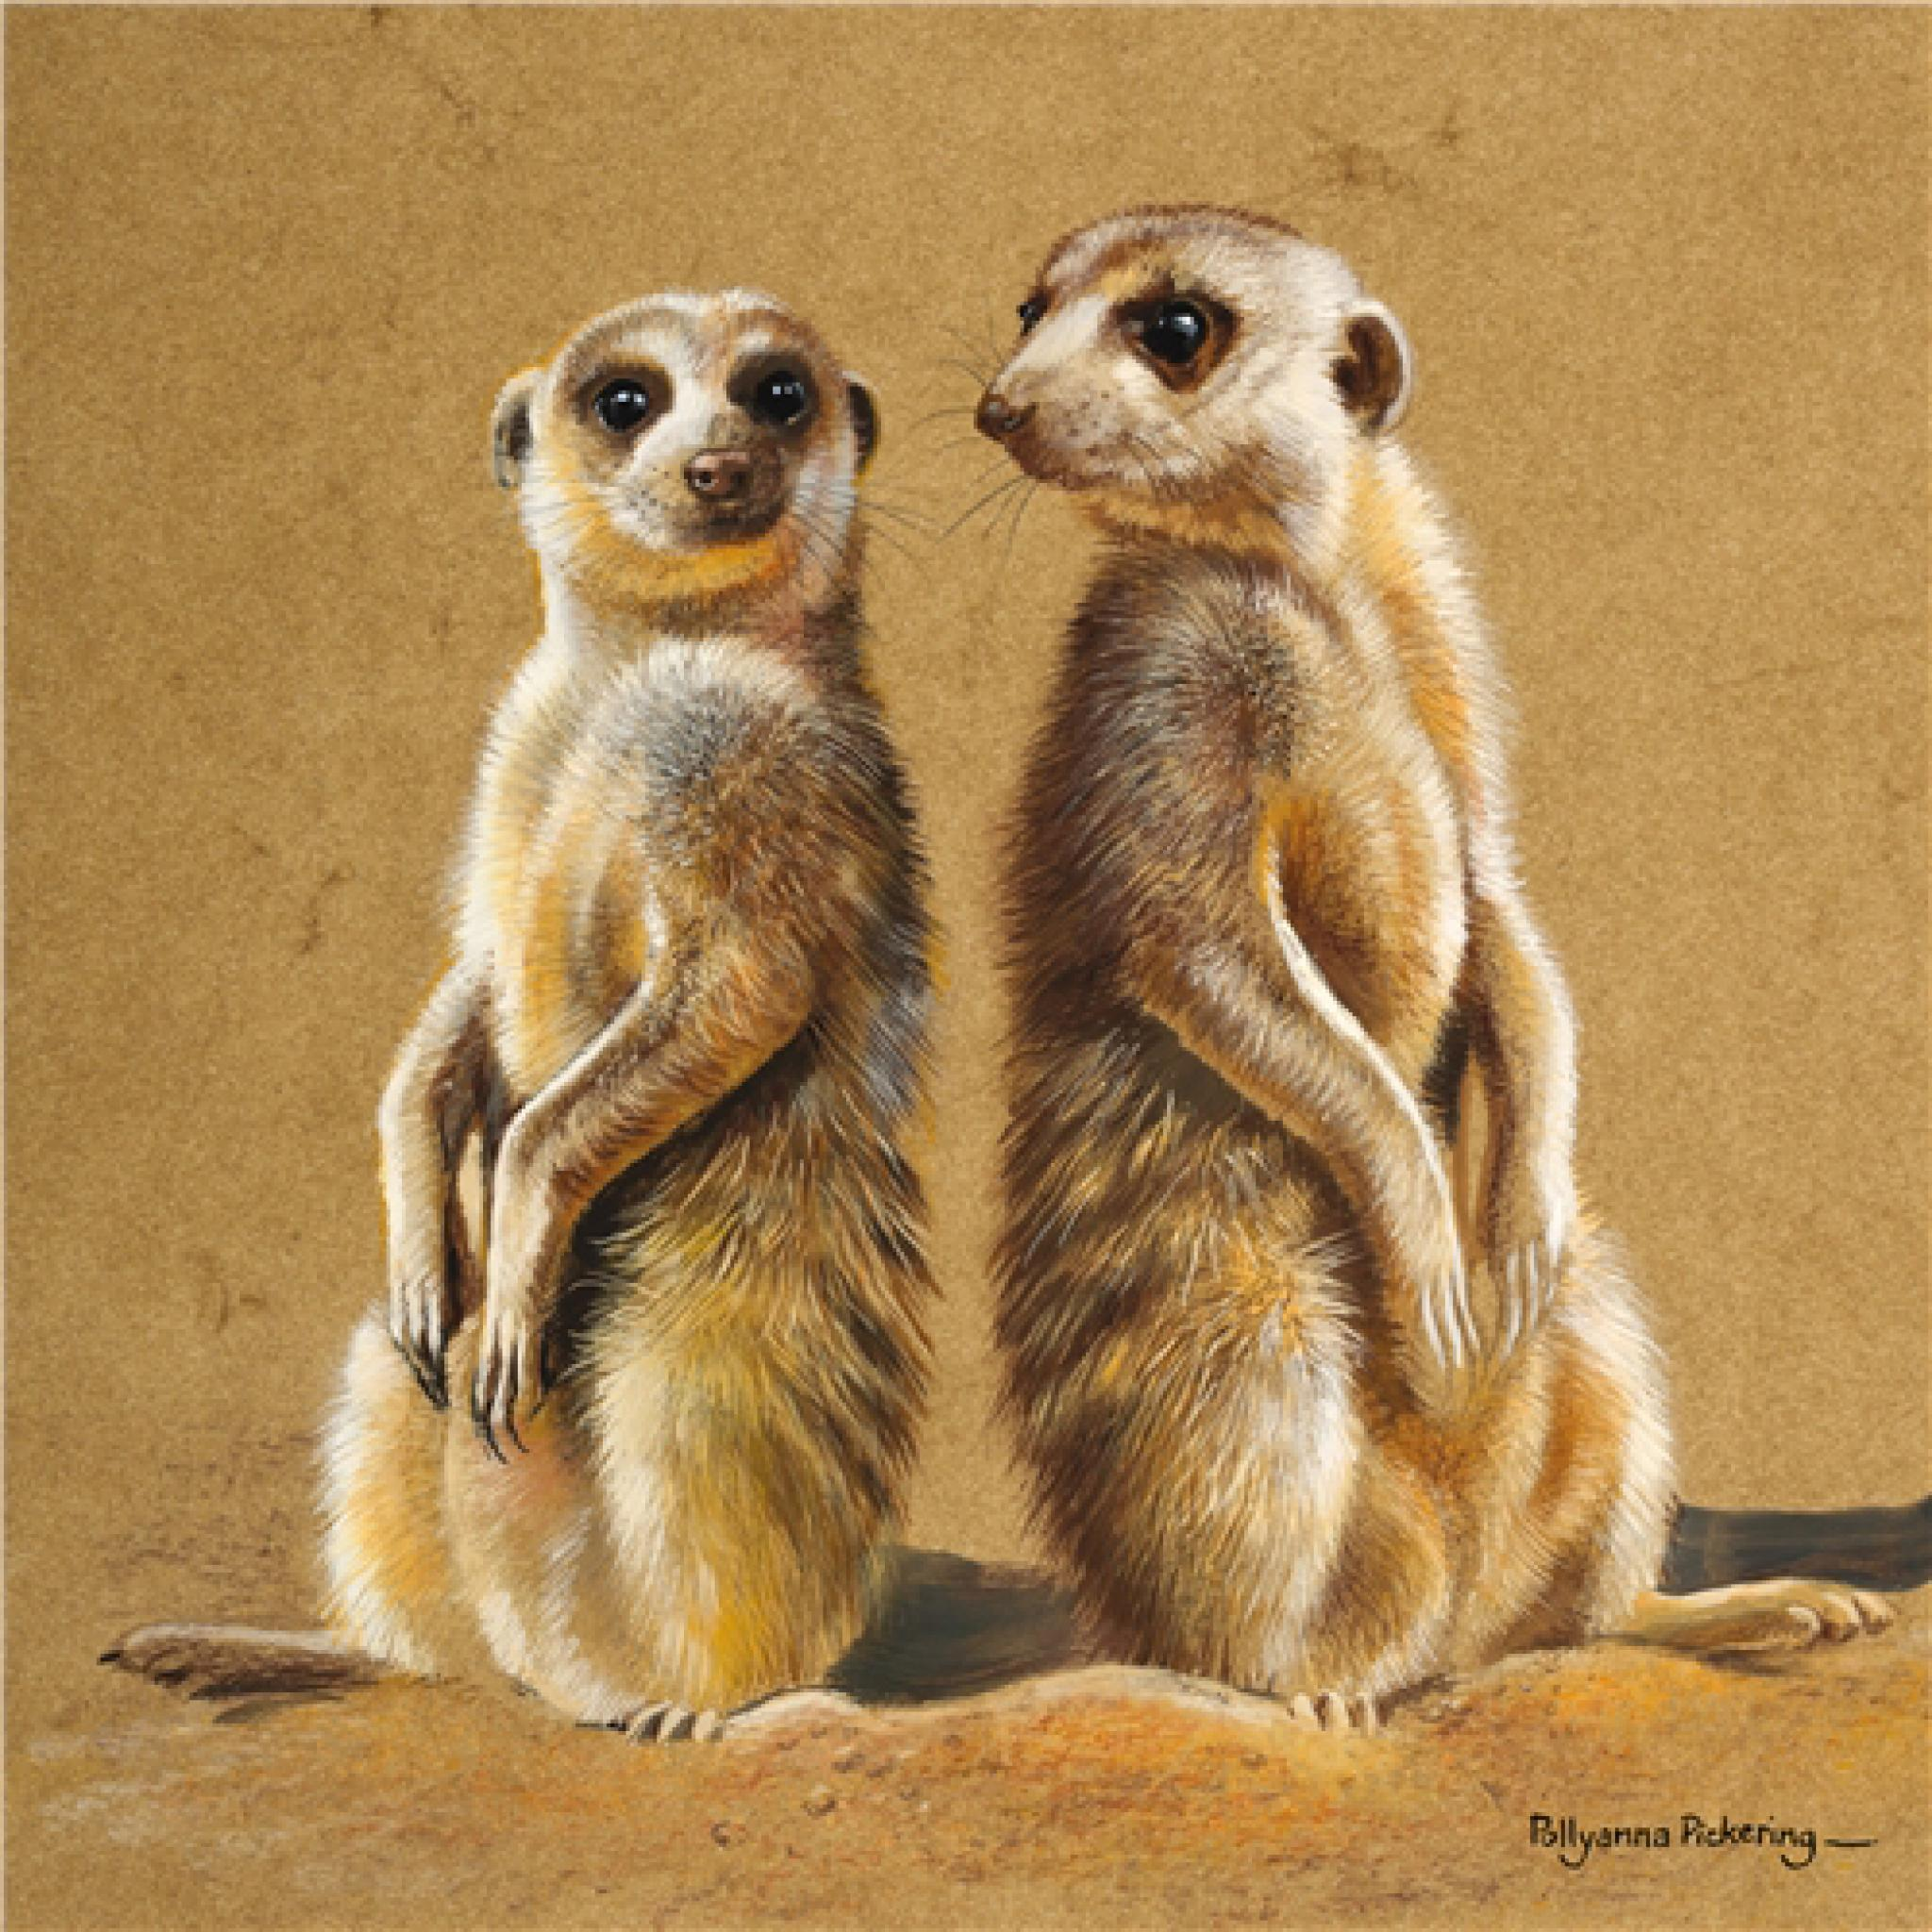 Pollyanna Pickering Collection - Meerkats